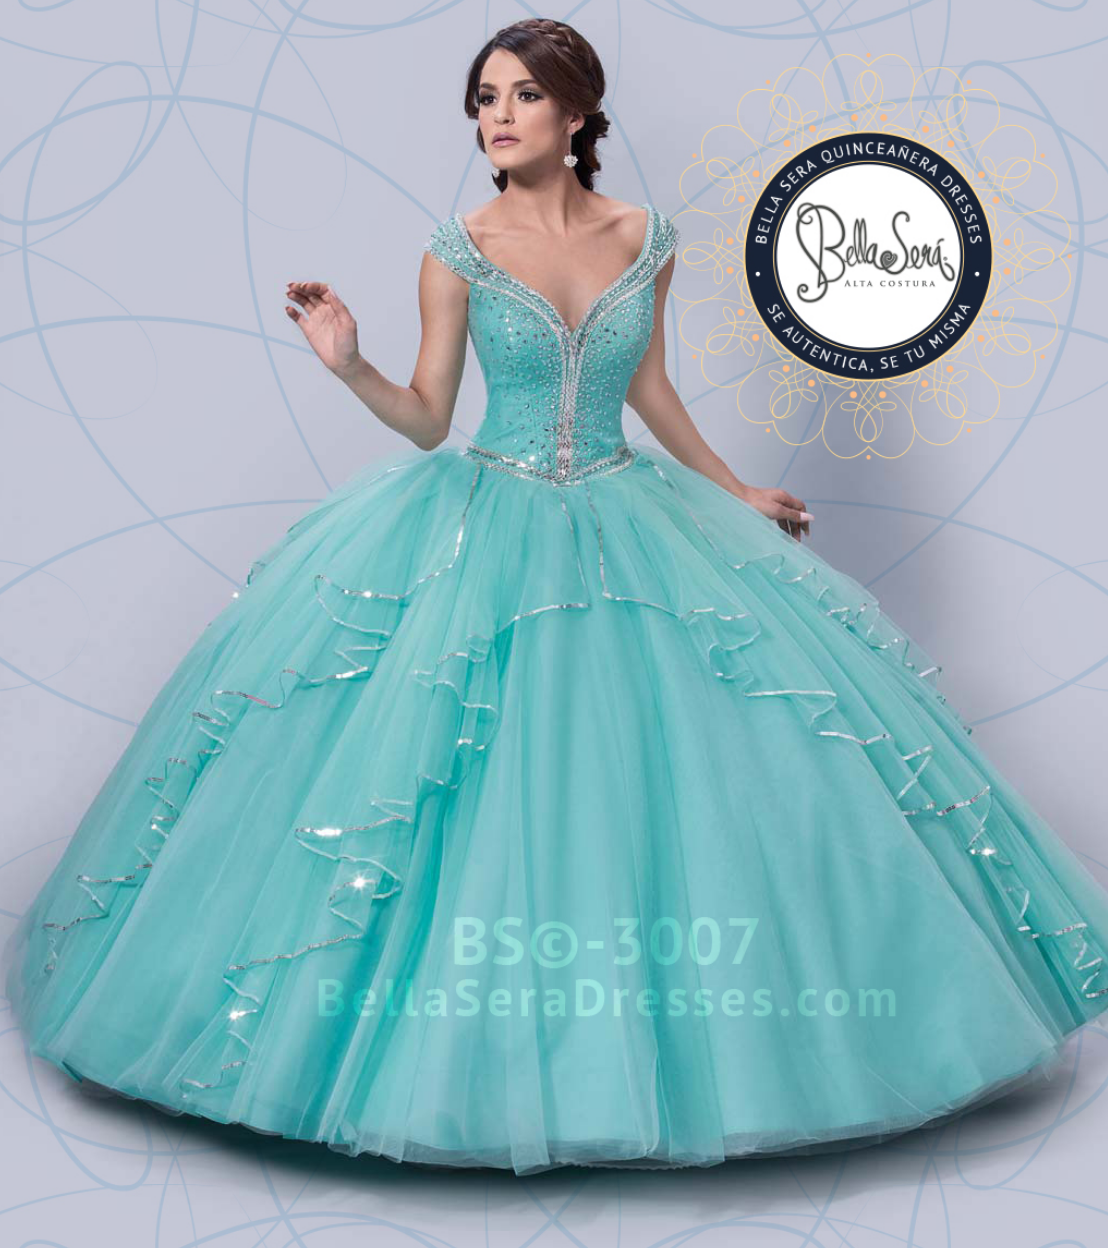 Wedding Dresses Austin Tx: Quinceanera Dresses, Prom